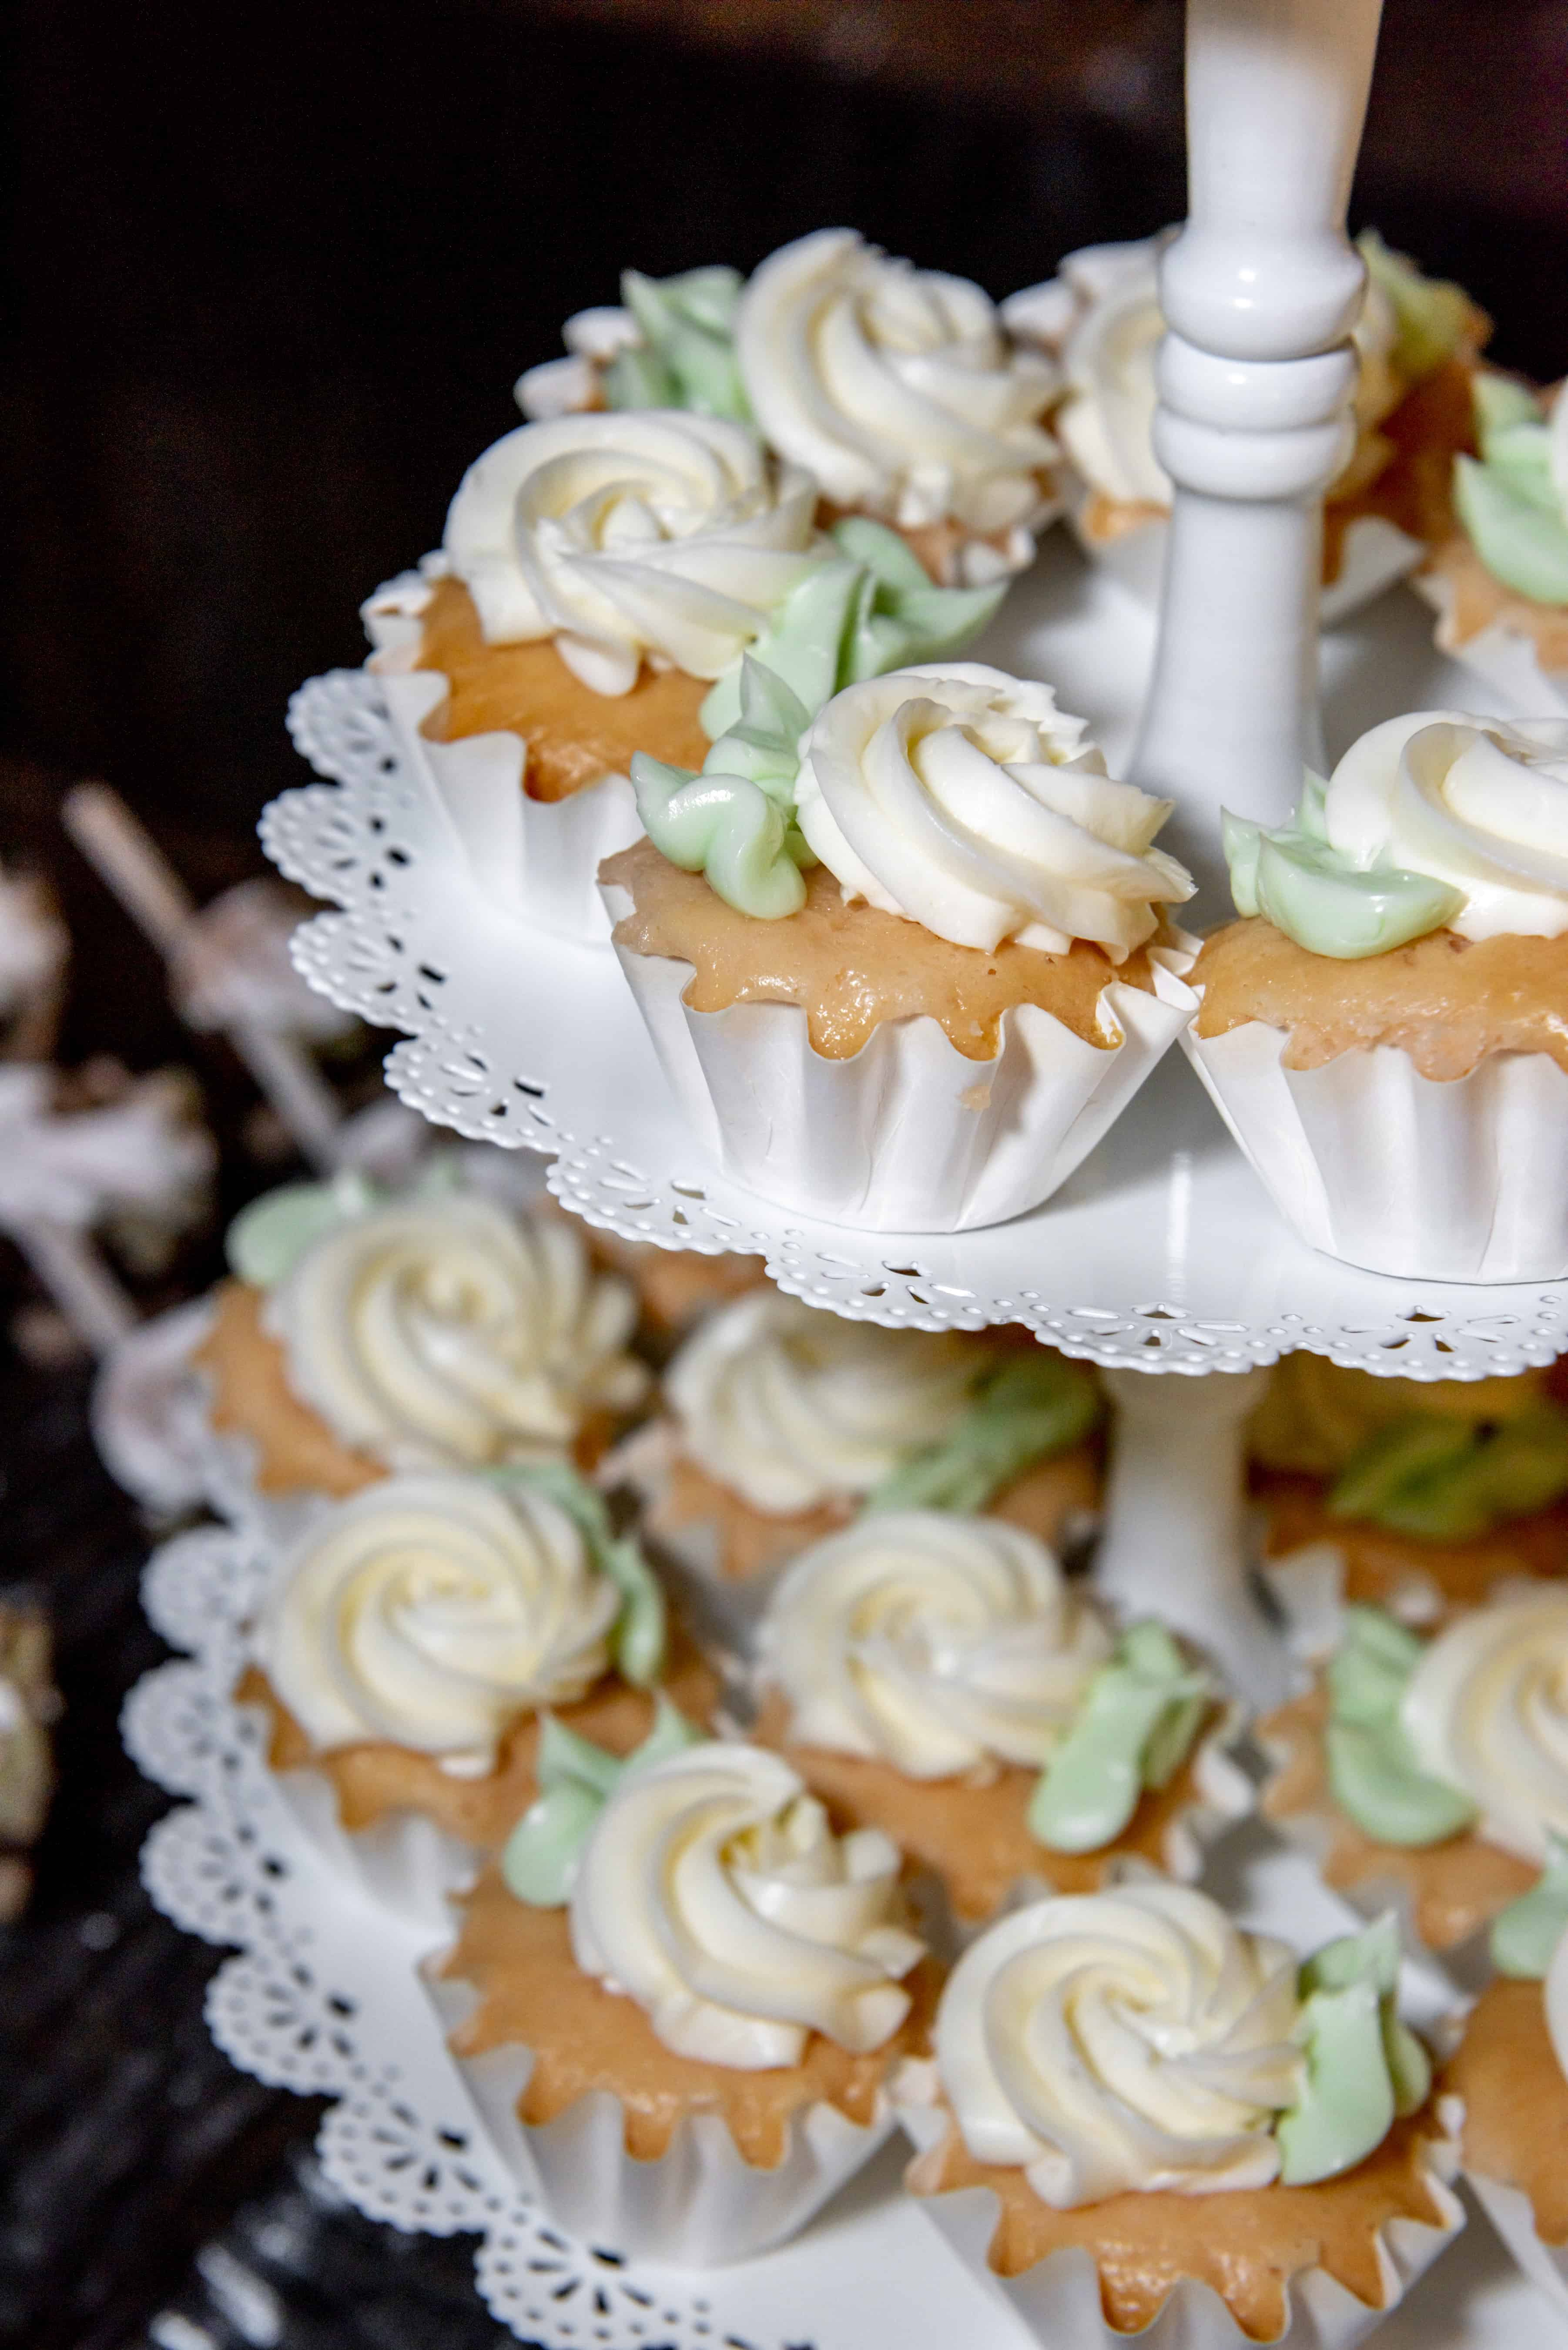 The Makery Cake Company Rose Swirl Cupcakes